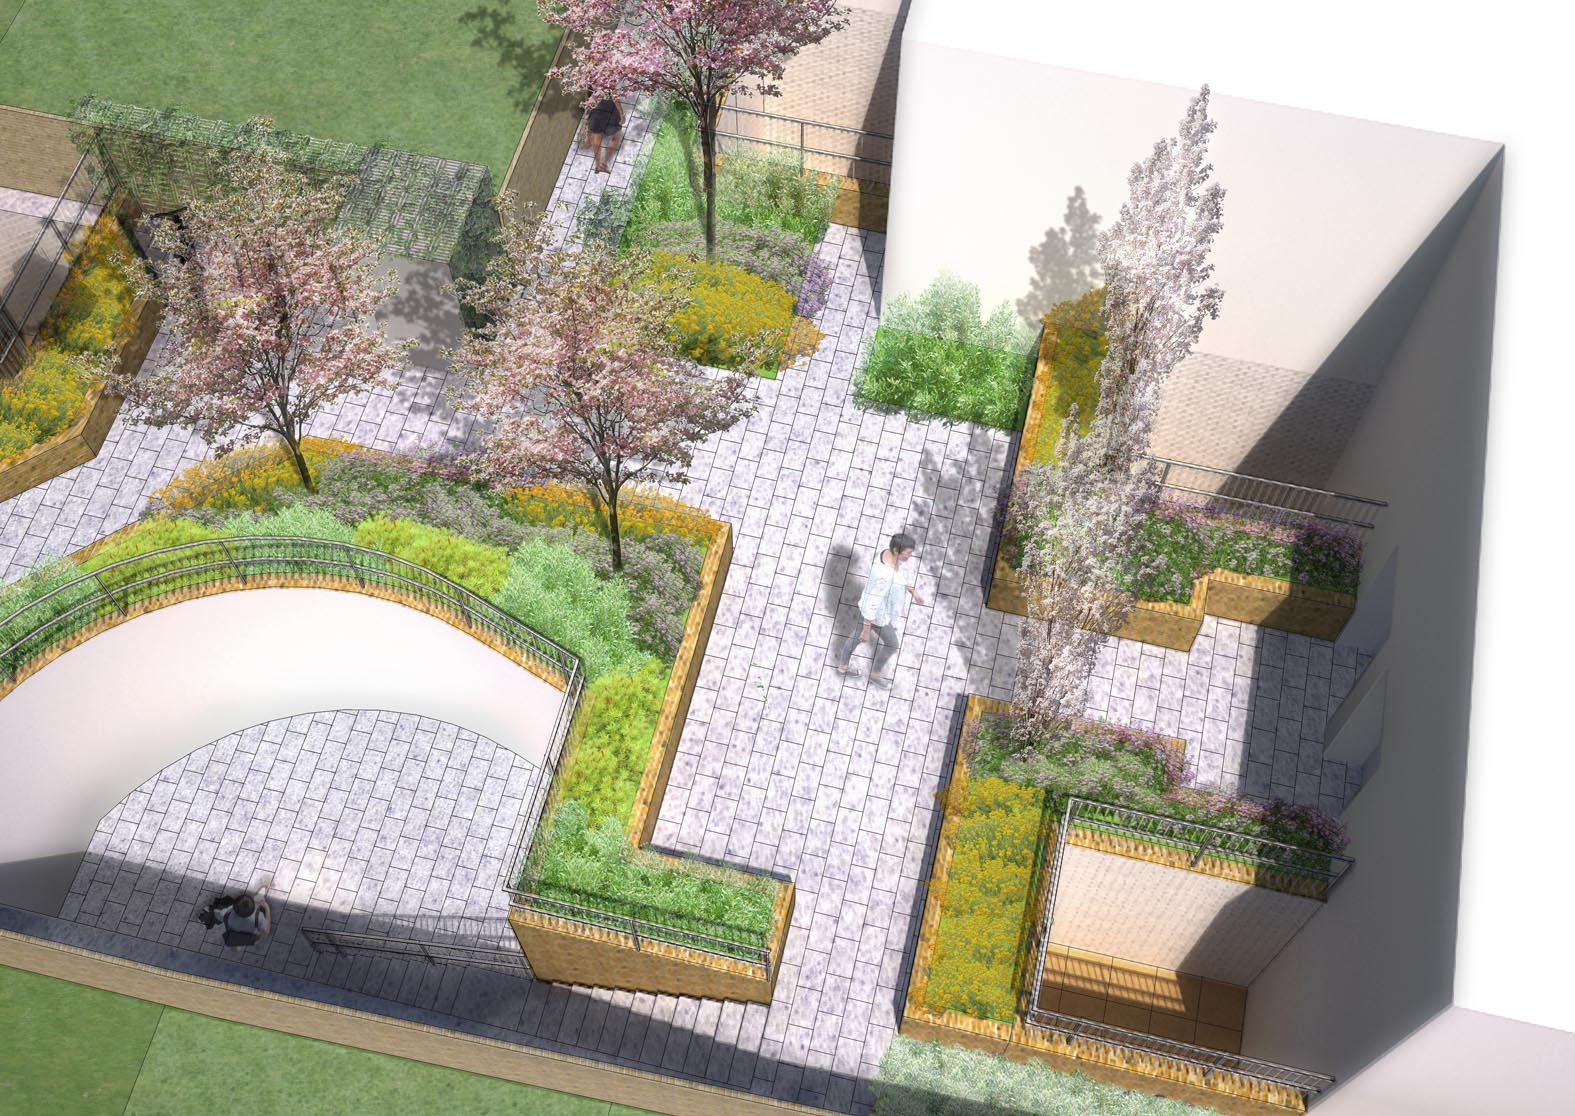 Street landscape design images for Iq landscape architects